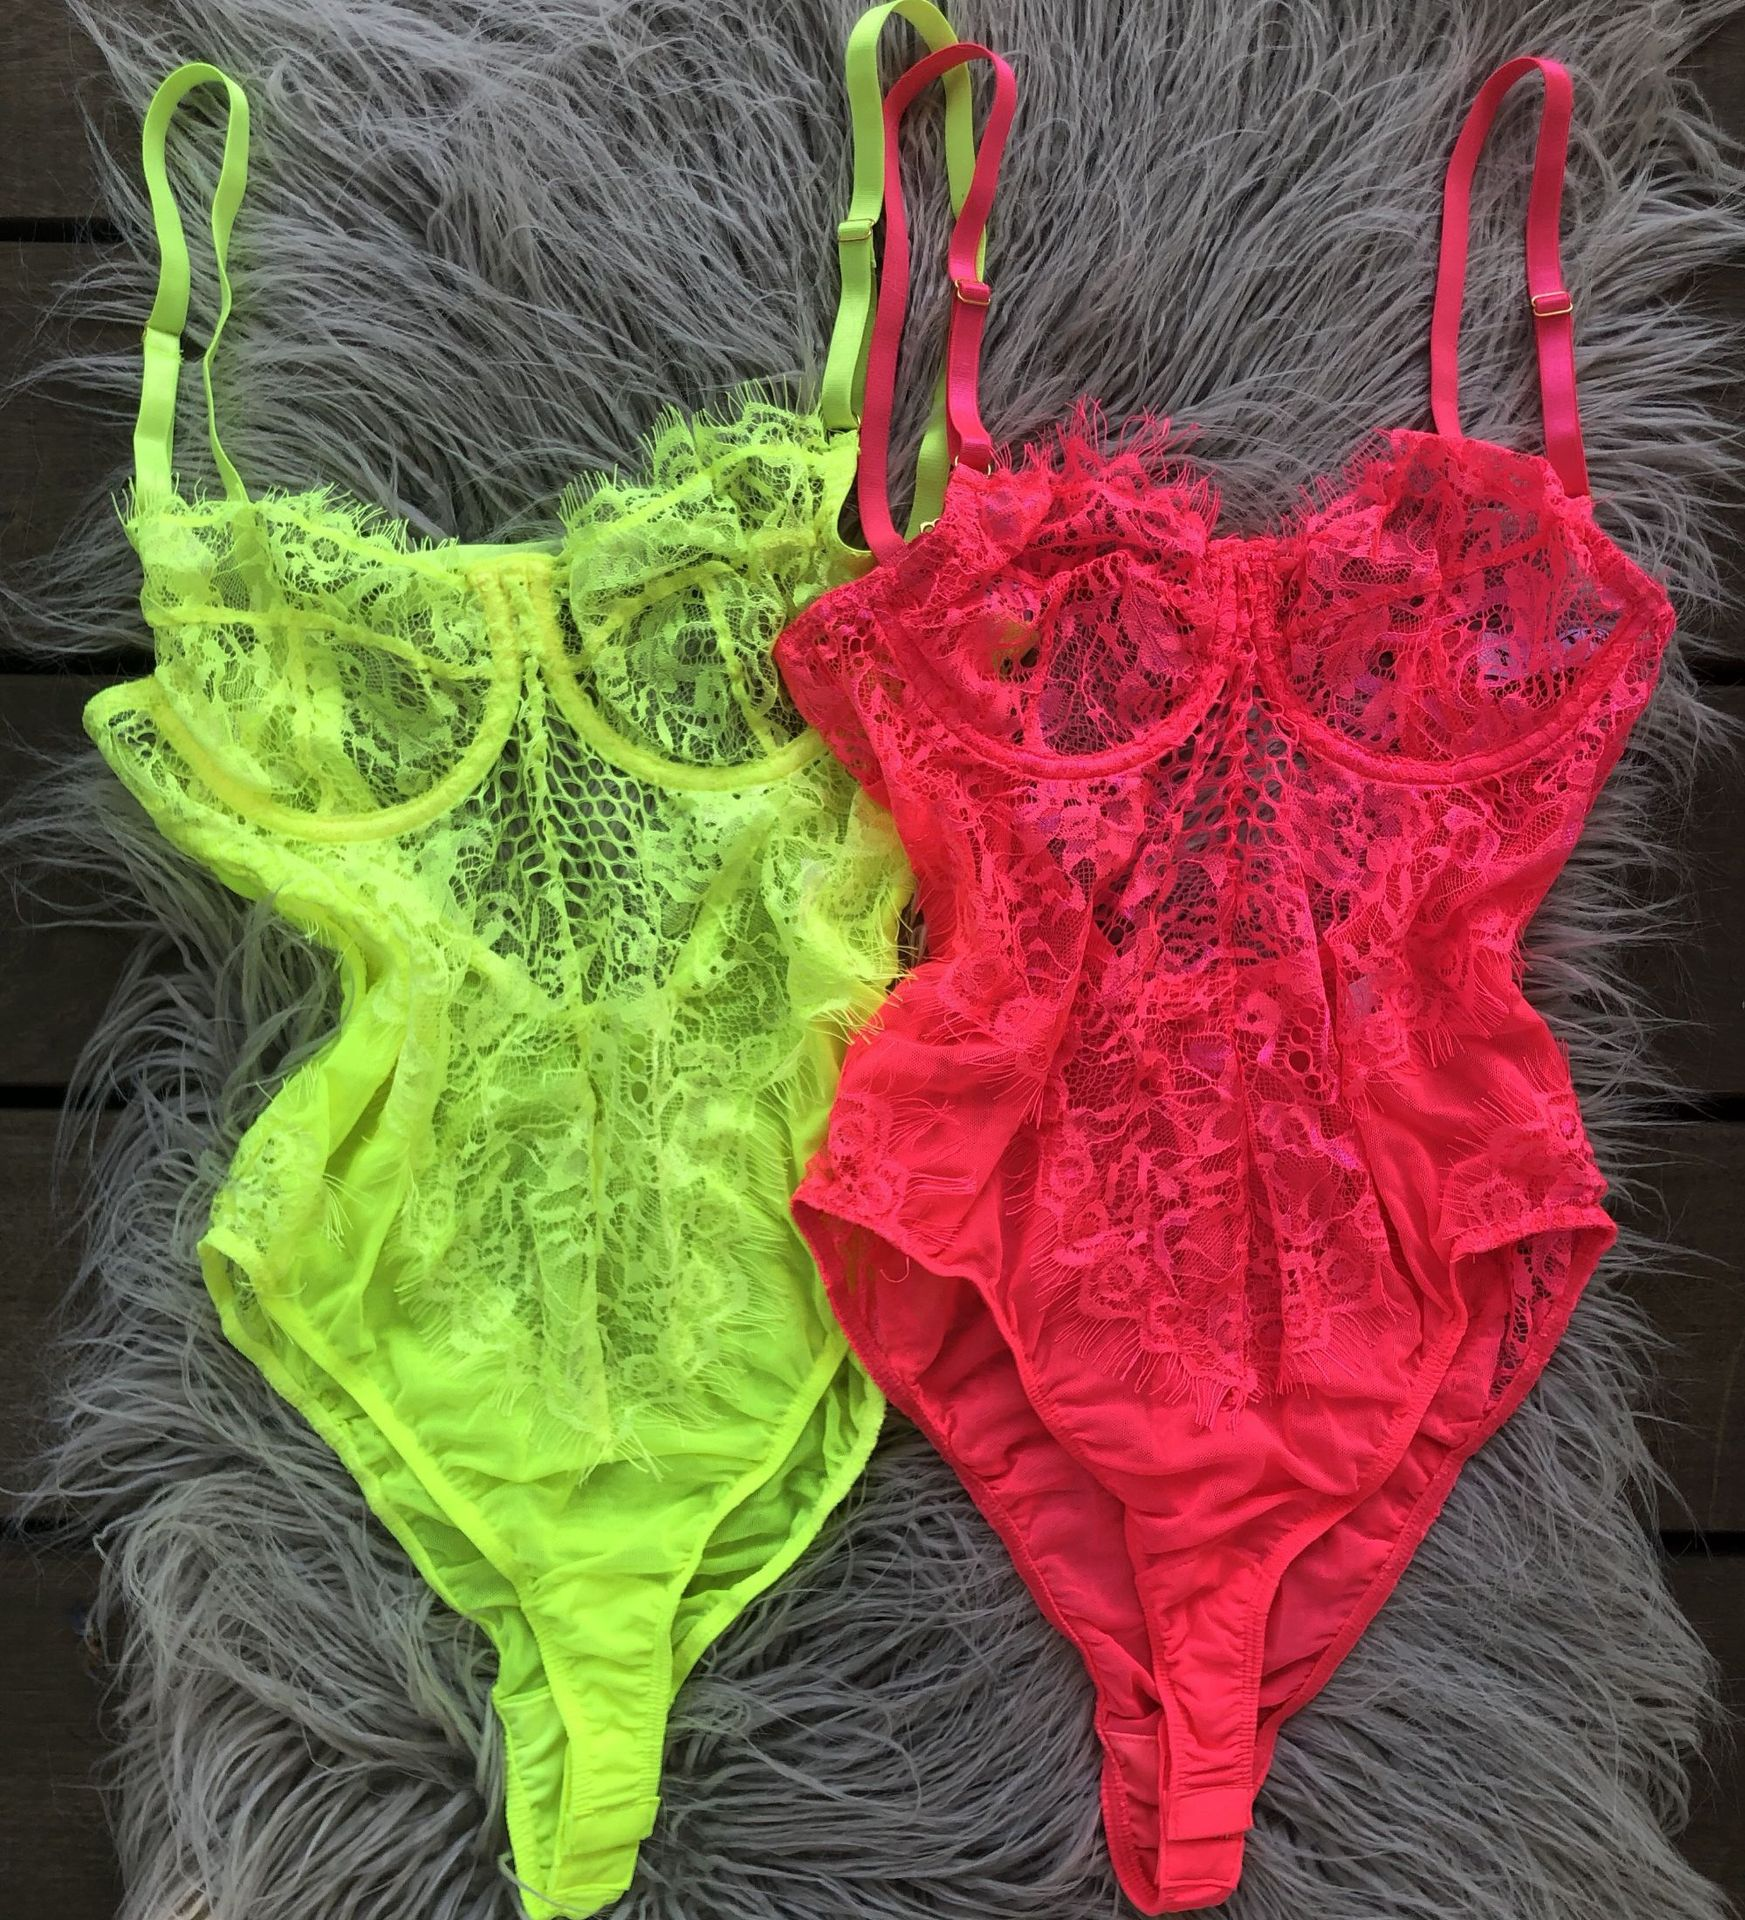 OMSJ New Neon Colors Fashion Eyelashes Lace Bodysuit Slim Fit Summer <font><b>Sexy</b></font> Backless Sheer Bodycon <font><b>Jumpsuit</b></font> Mesh Hollow Out Tops image